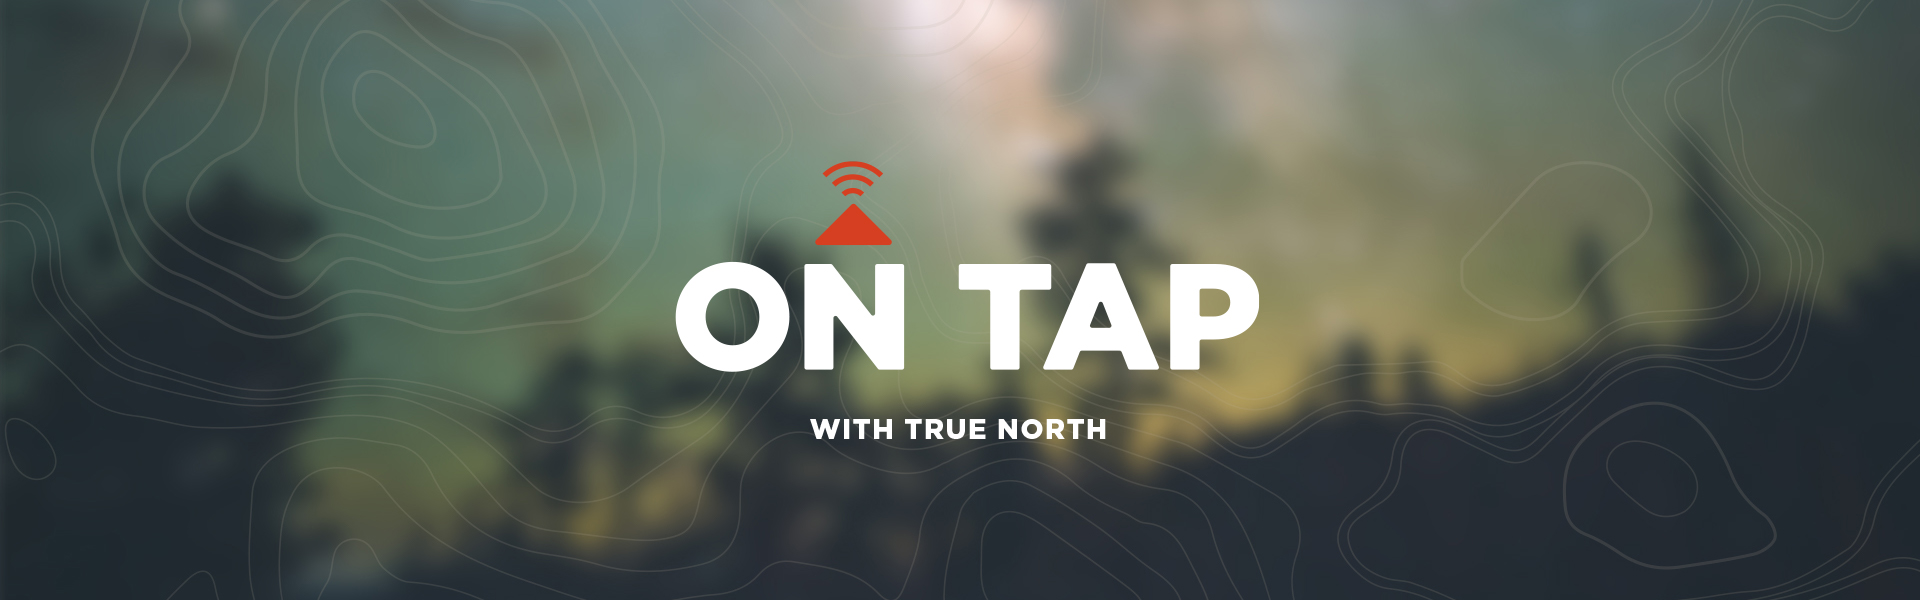 on-tap-banner-1